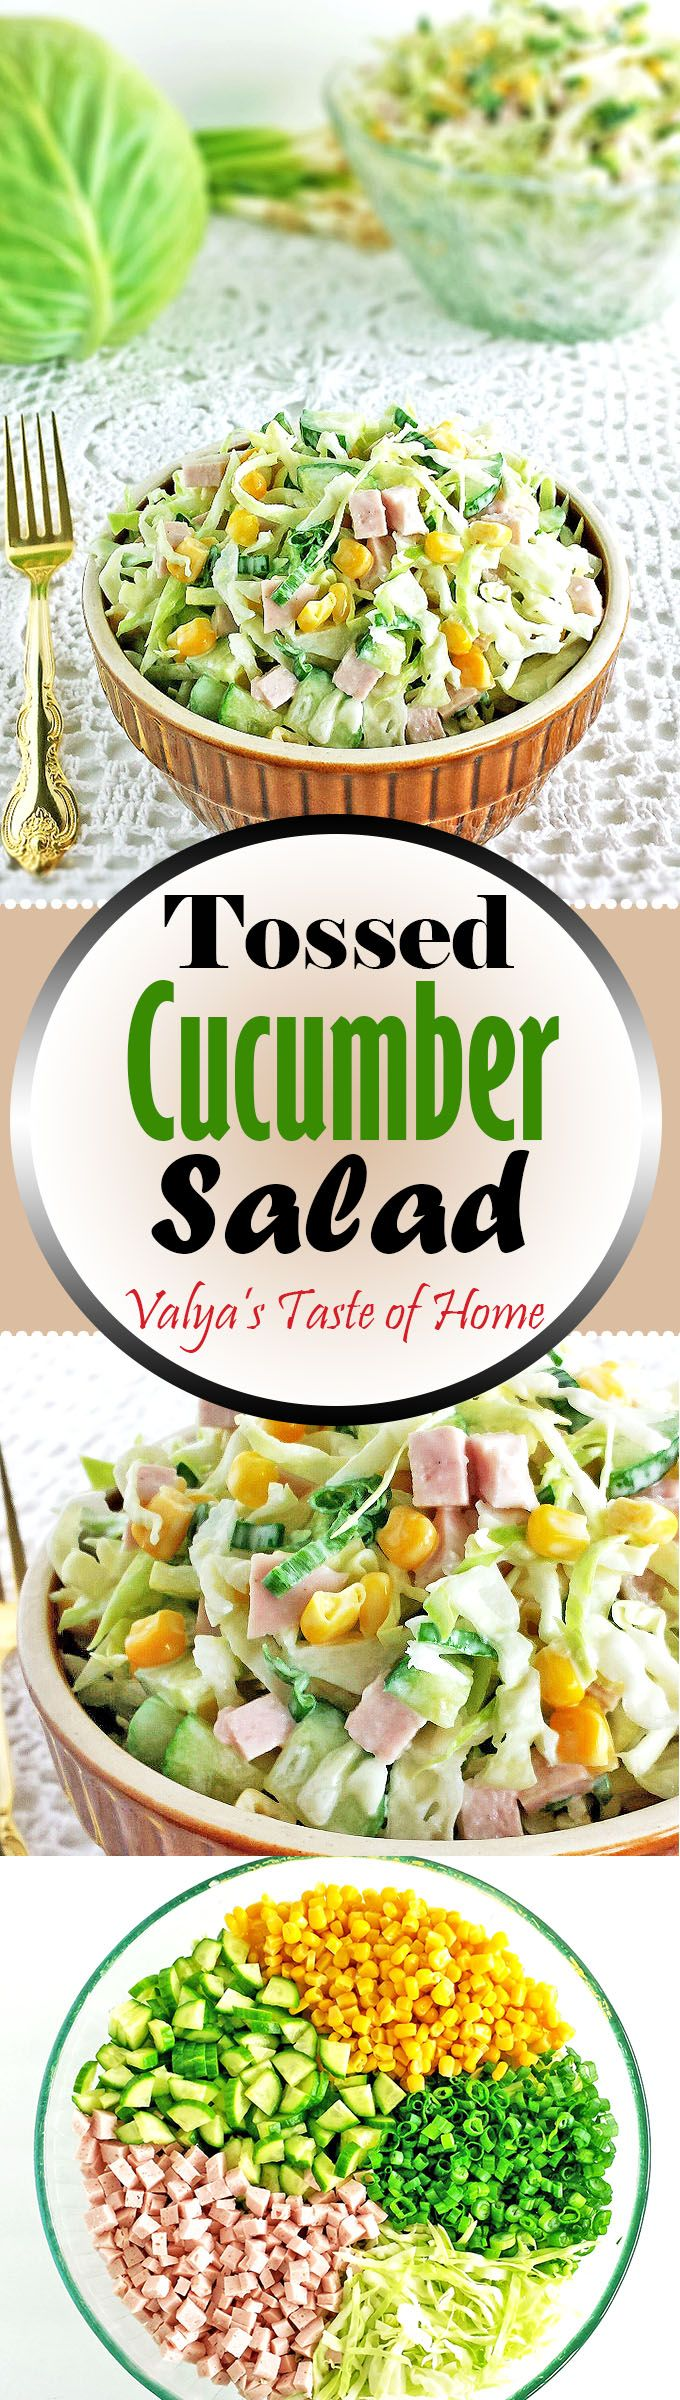 Crunchy cabbage, cucumbers, chives and all the rest of the ingredients mixed with this brand of mayo, turns out a perfectly tasty salad. Great for any occasion or holiday.